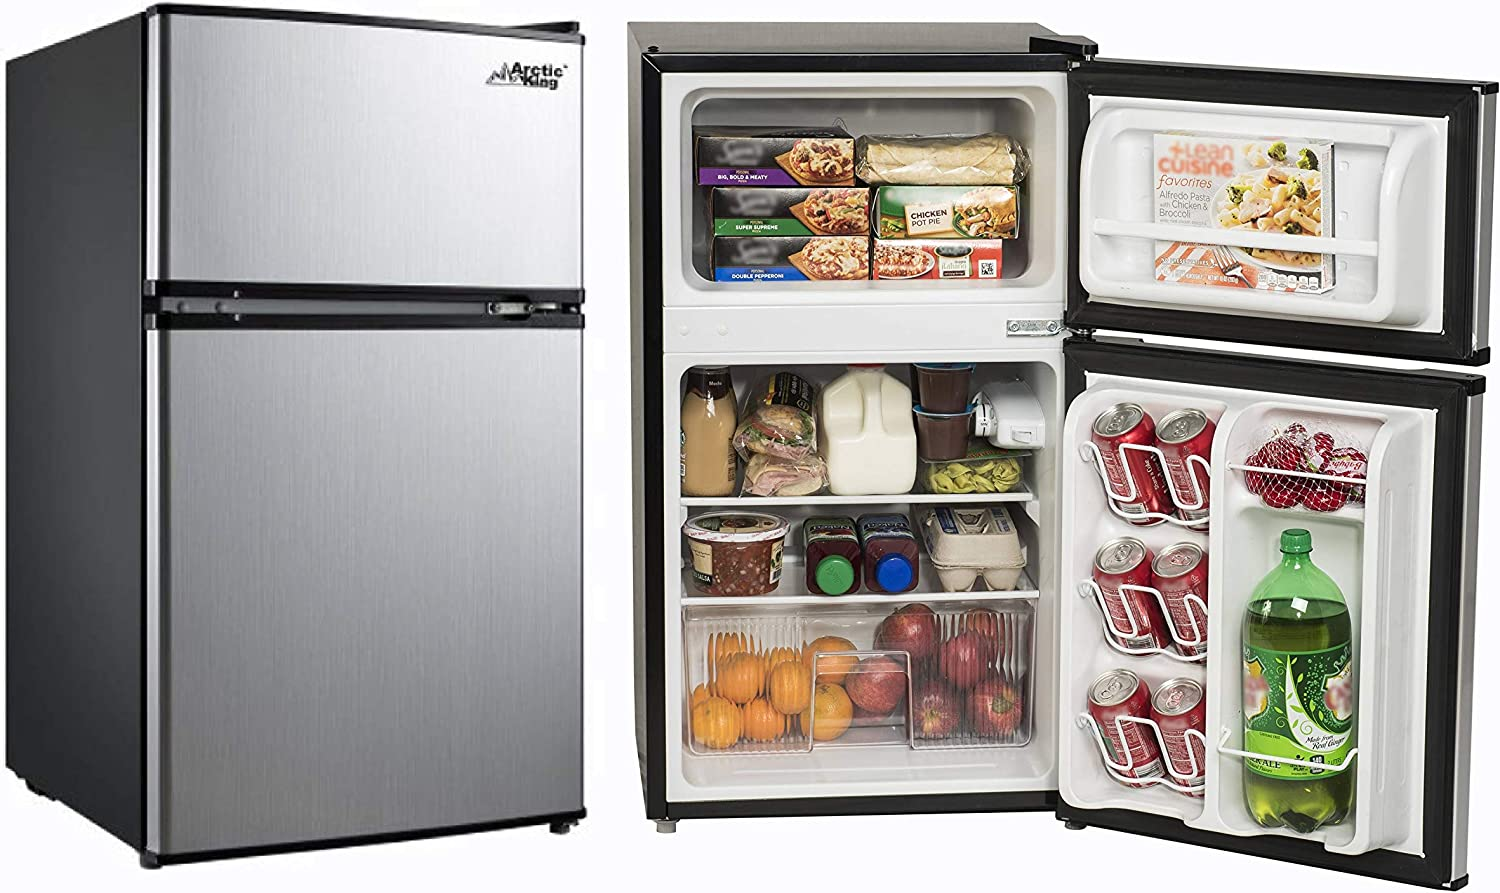 Small Refrigerator with Freezer for Office or Dorm Apartment. Compact  Undercounter Mini Fridge Combo Appliance for Bedroom or Room at Home Double  Door ...